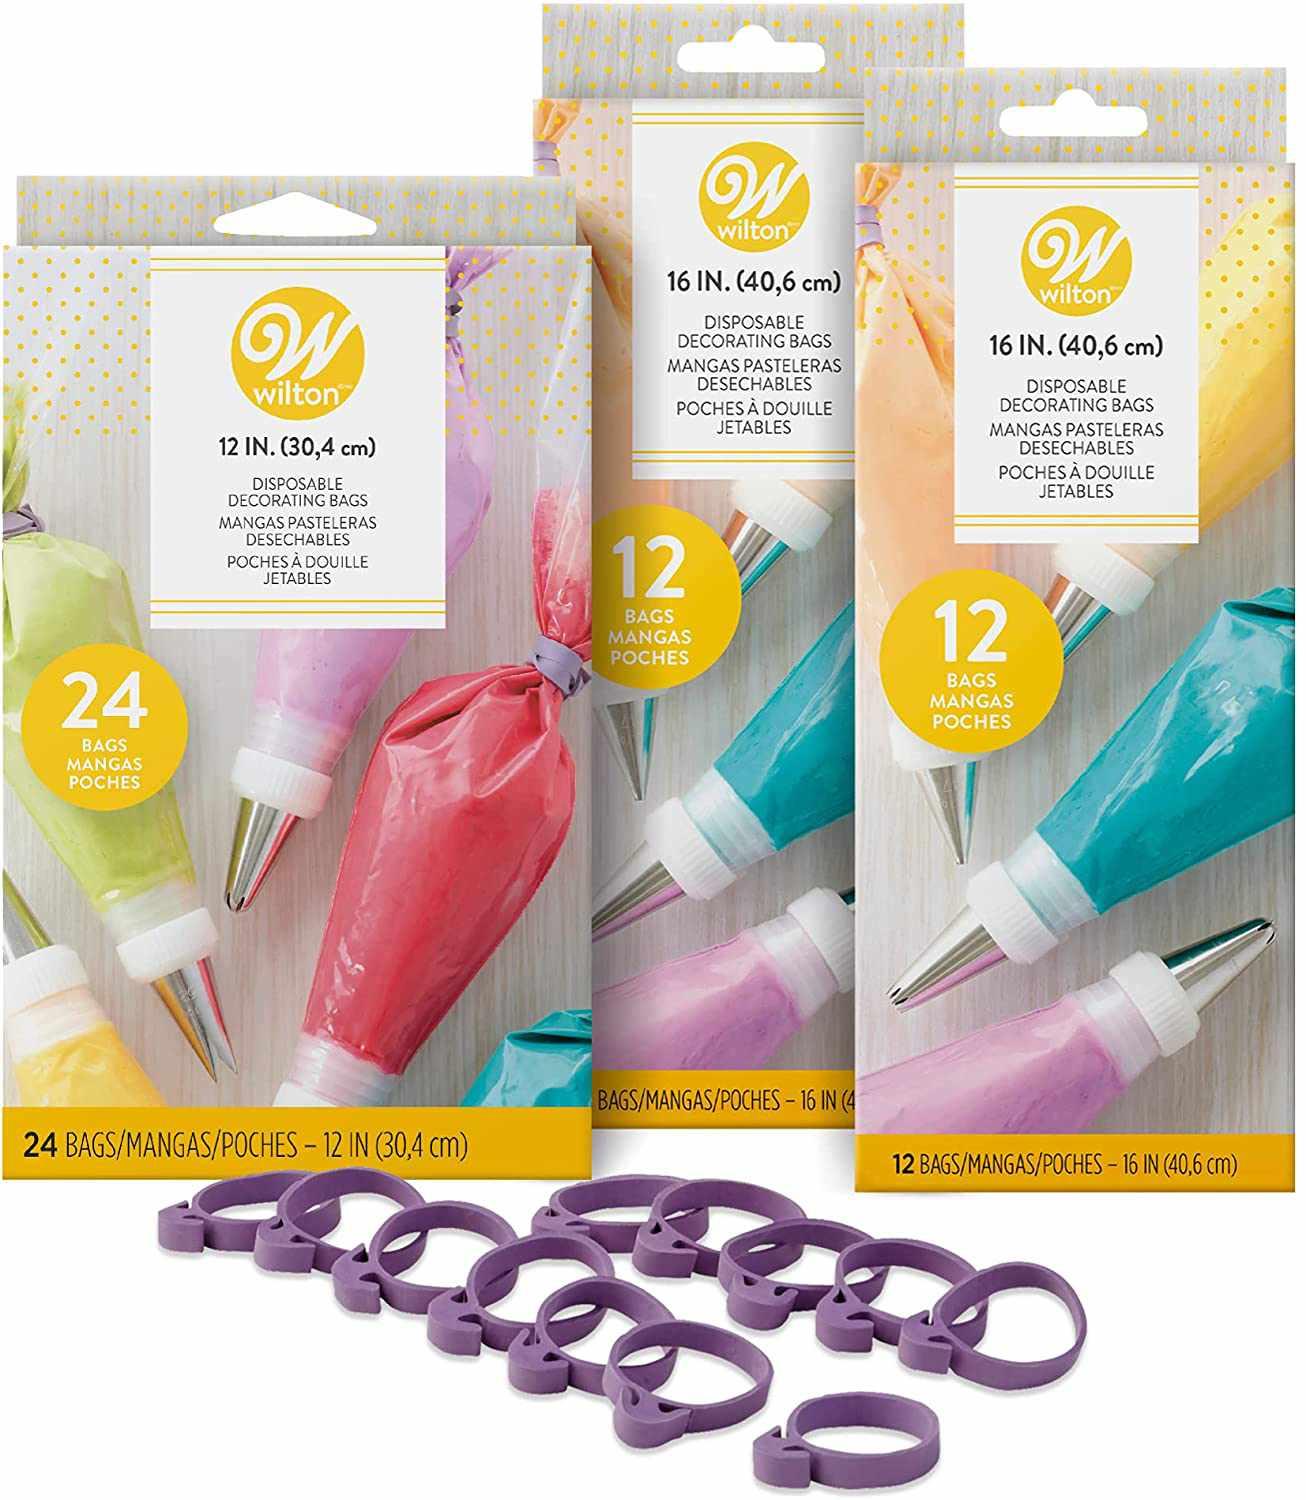 Wilton Assorted Size Disposable Decorating Bags With Ties